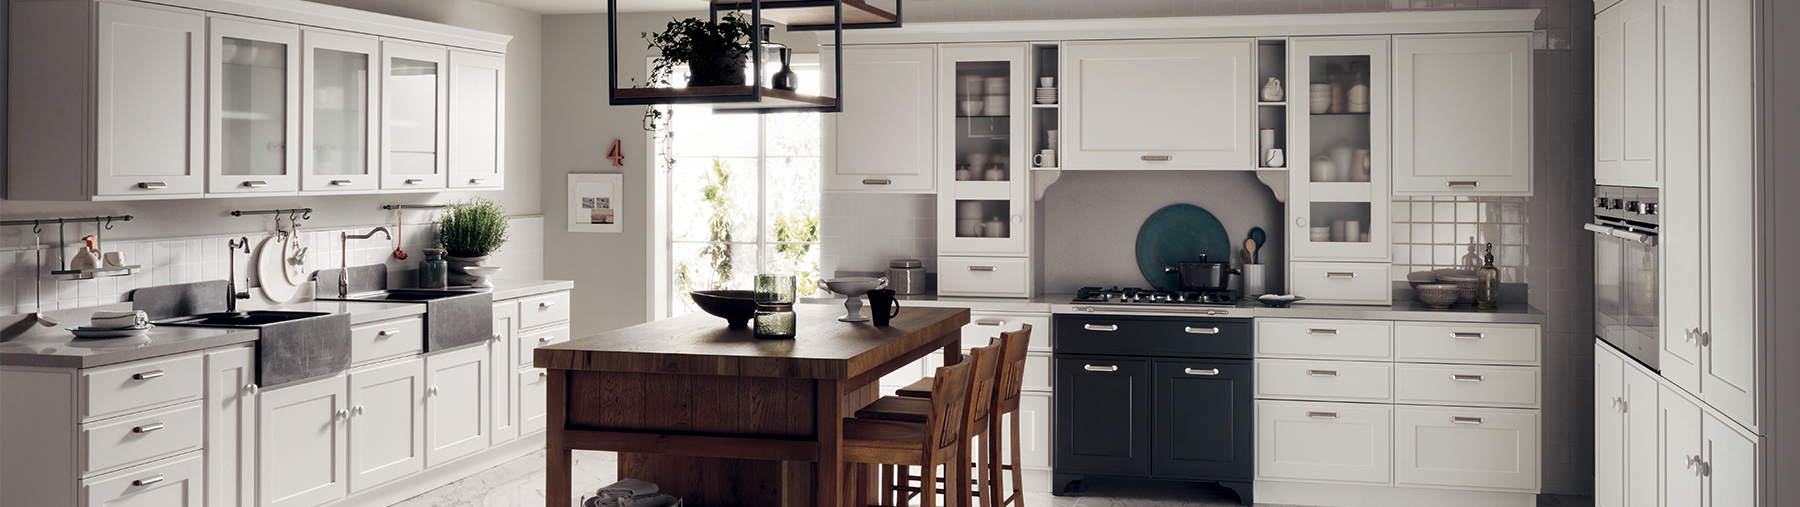 Scavolini wooden kitchen units